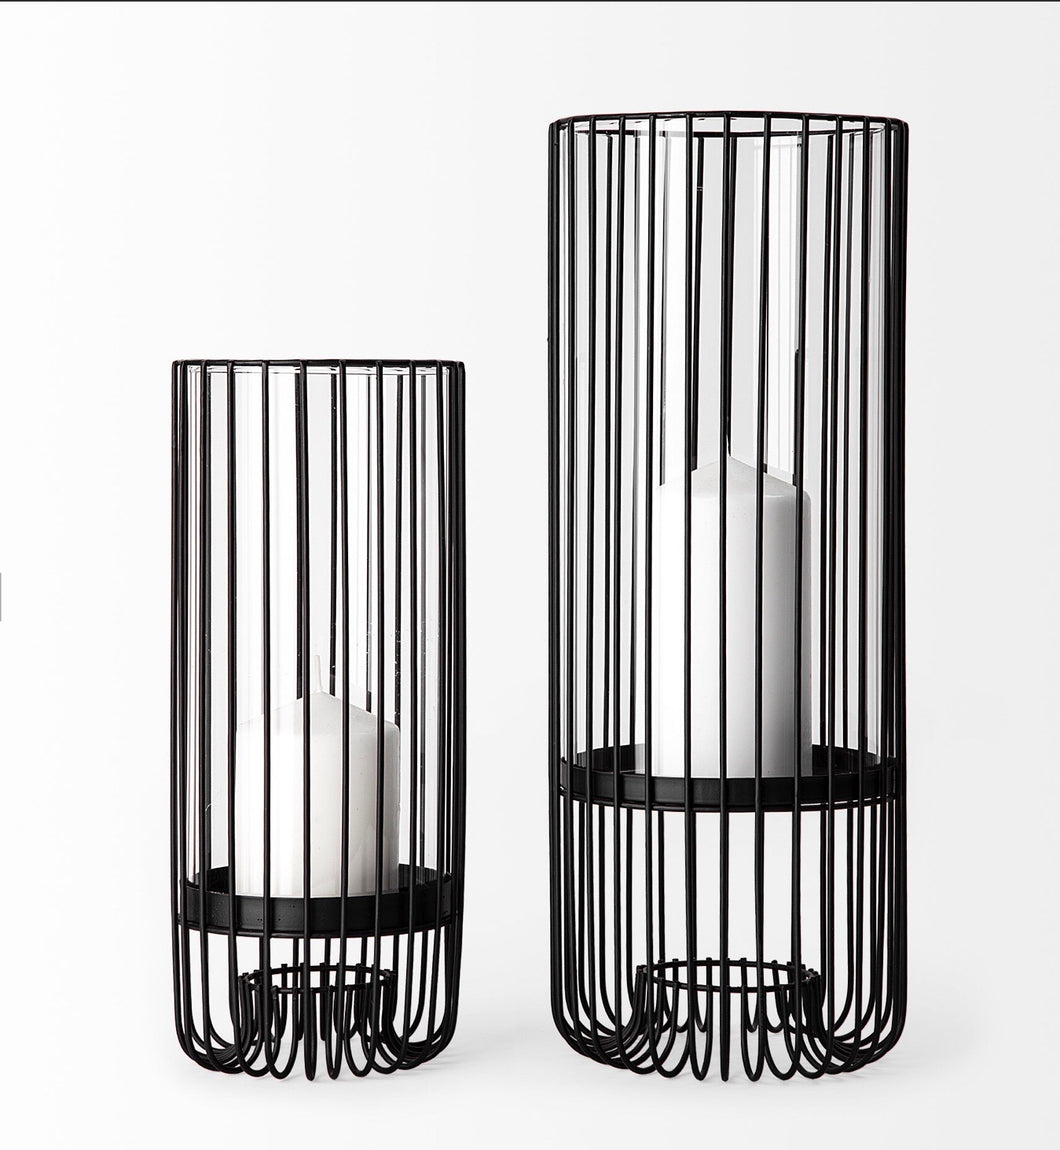 S/2 Black Metal Cylindrical Candle Holders